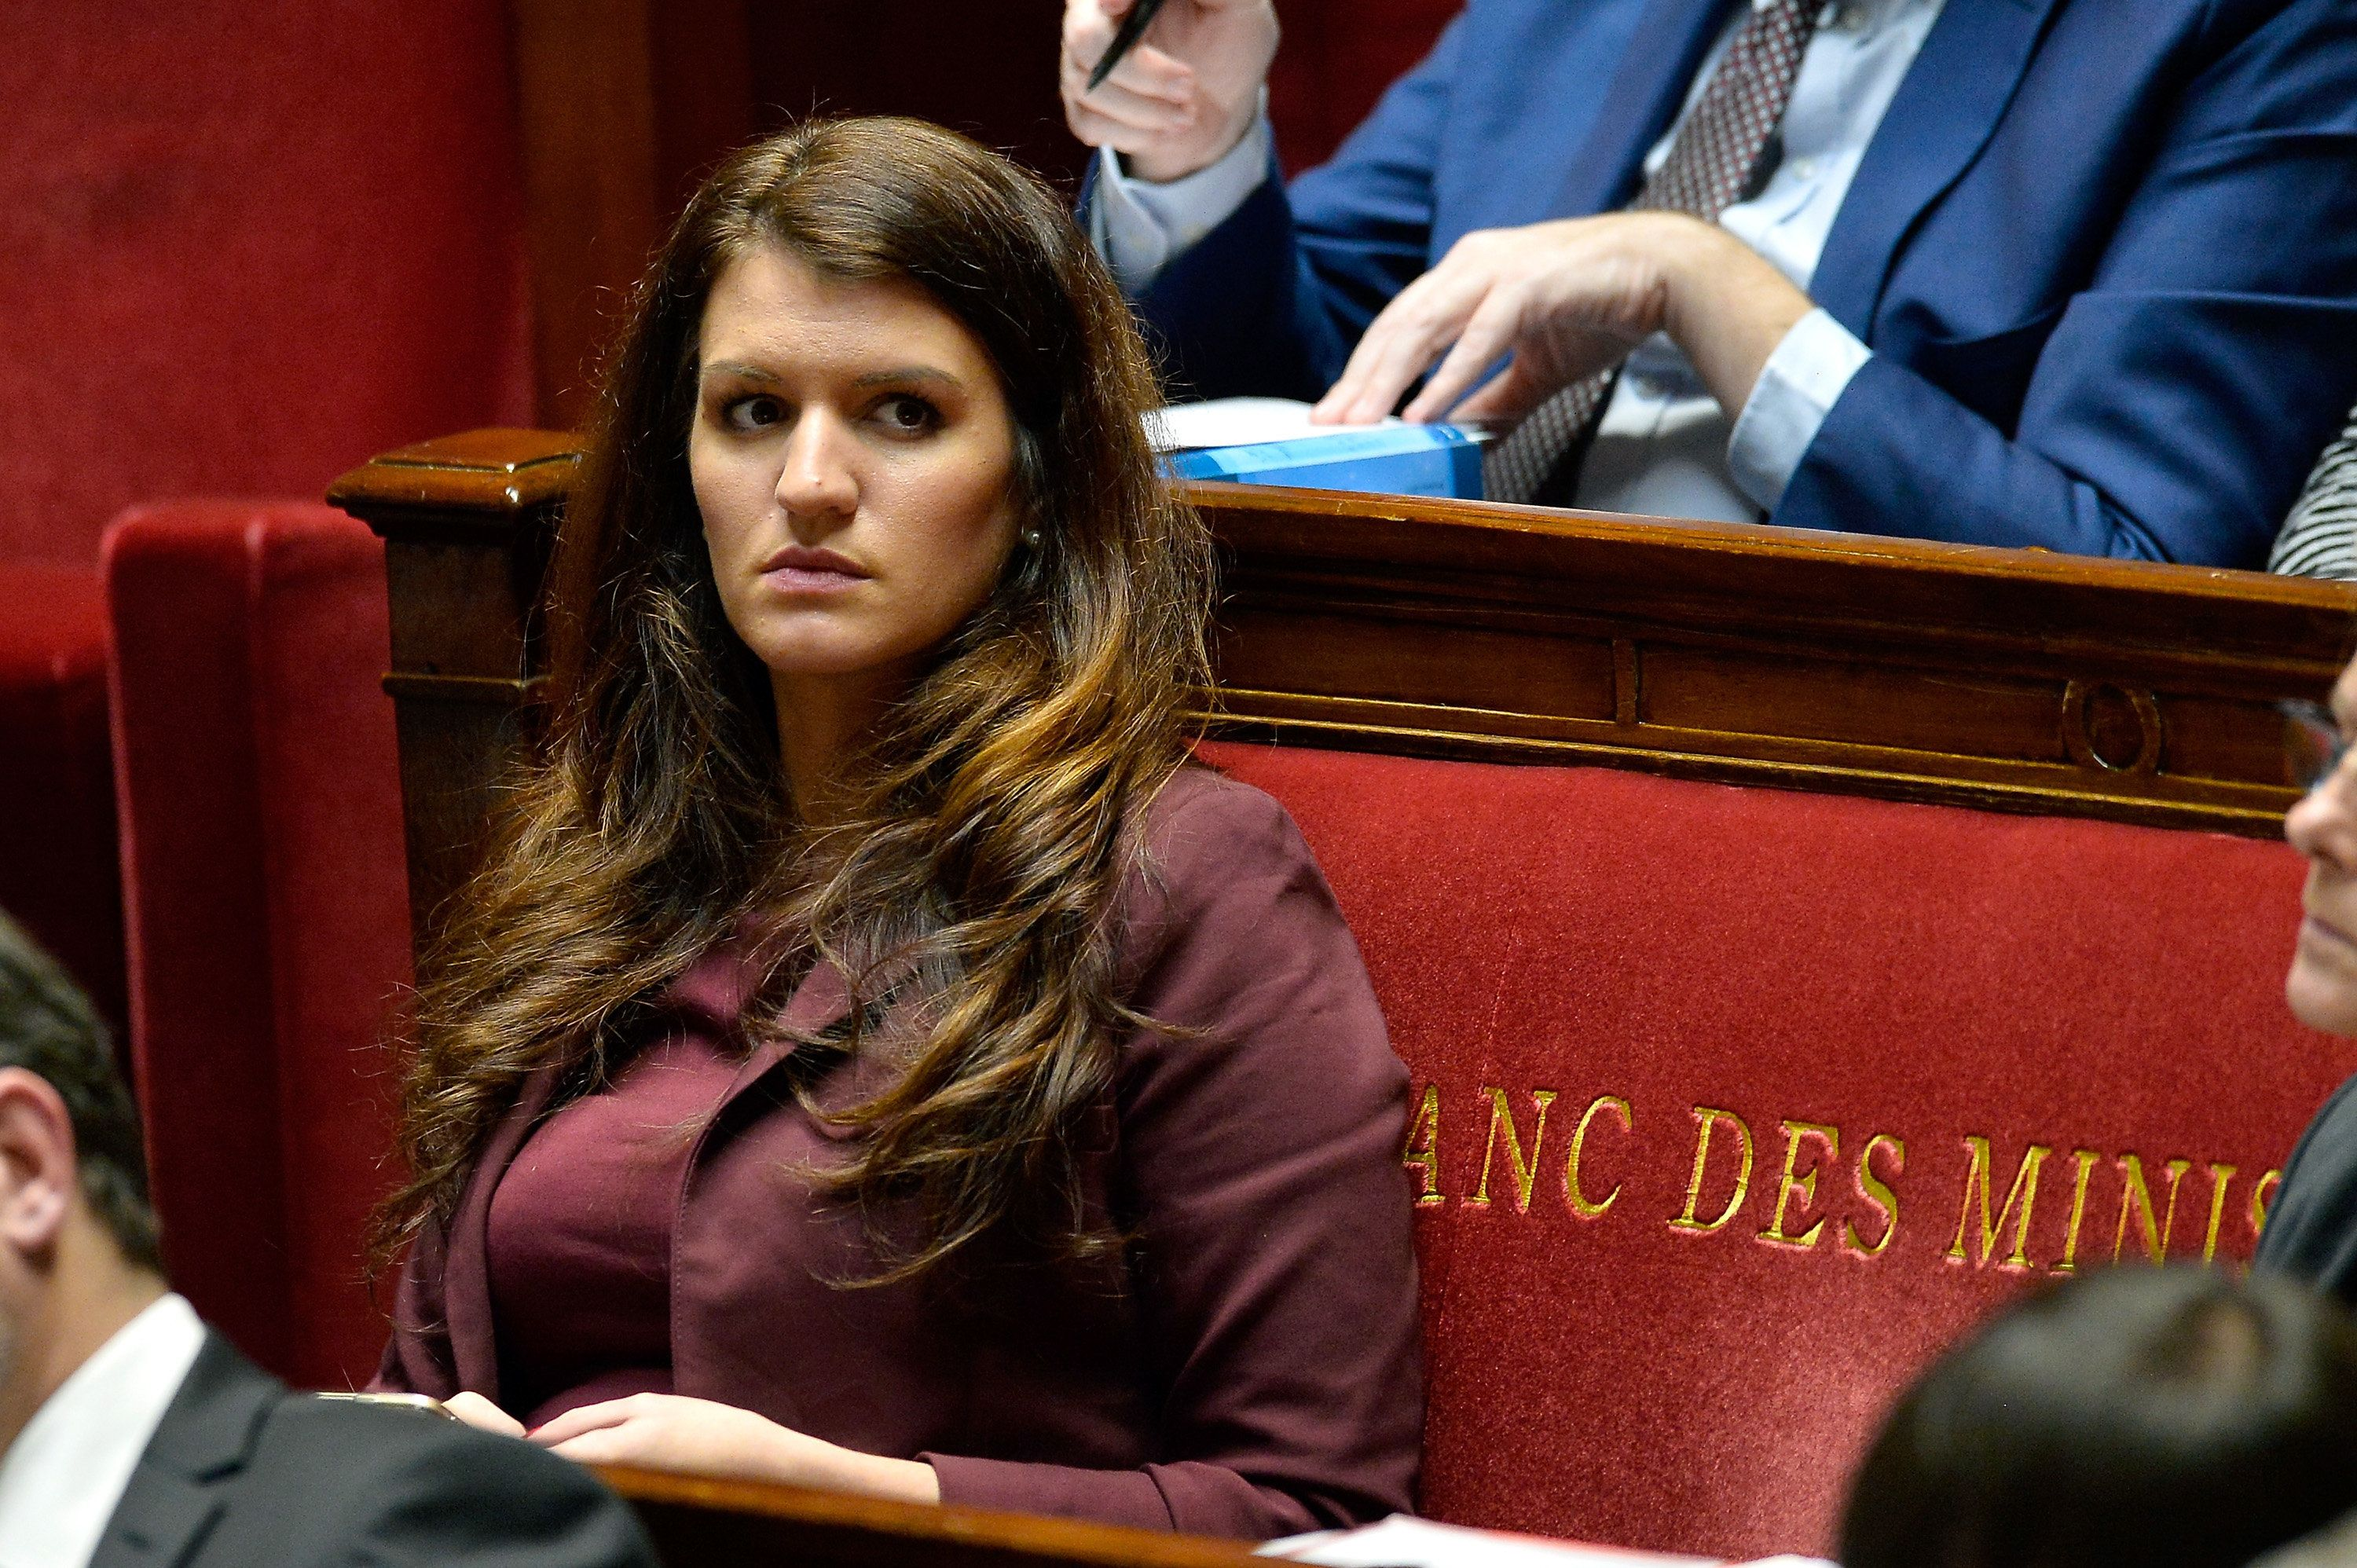 France To Fix Legal Age Of Consent At 15 Following Outrage Over Rape